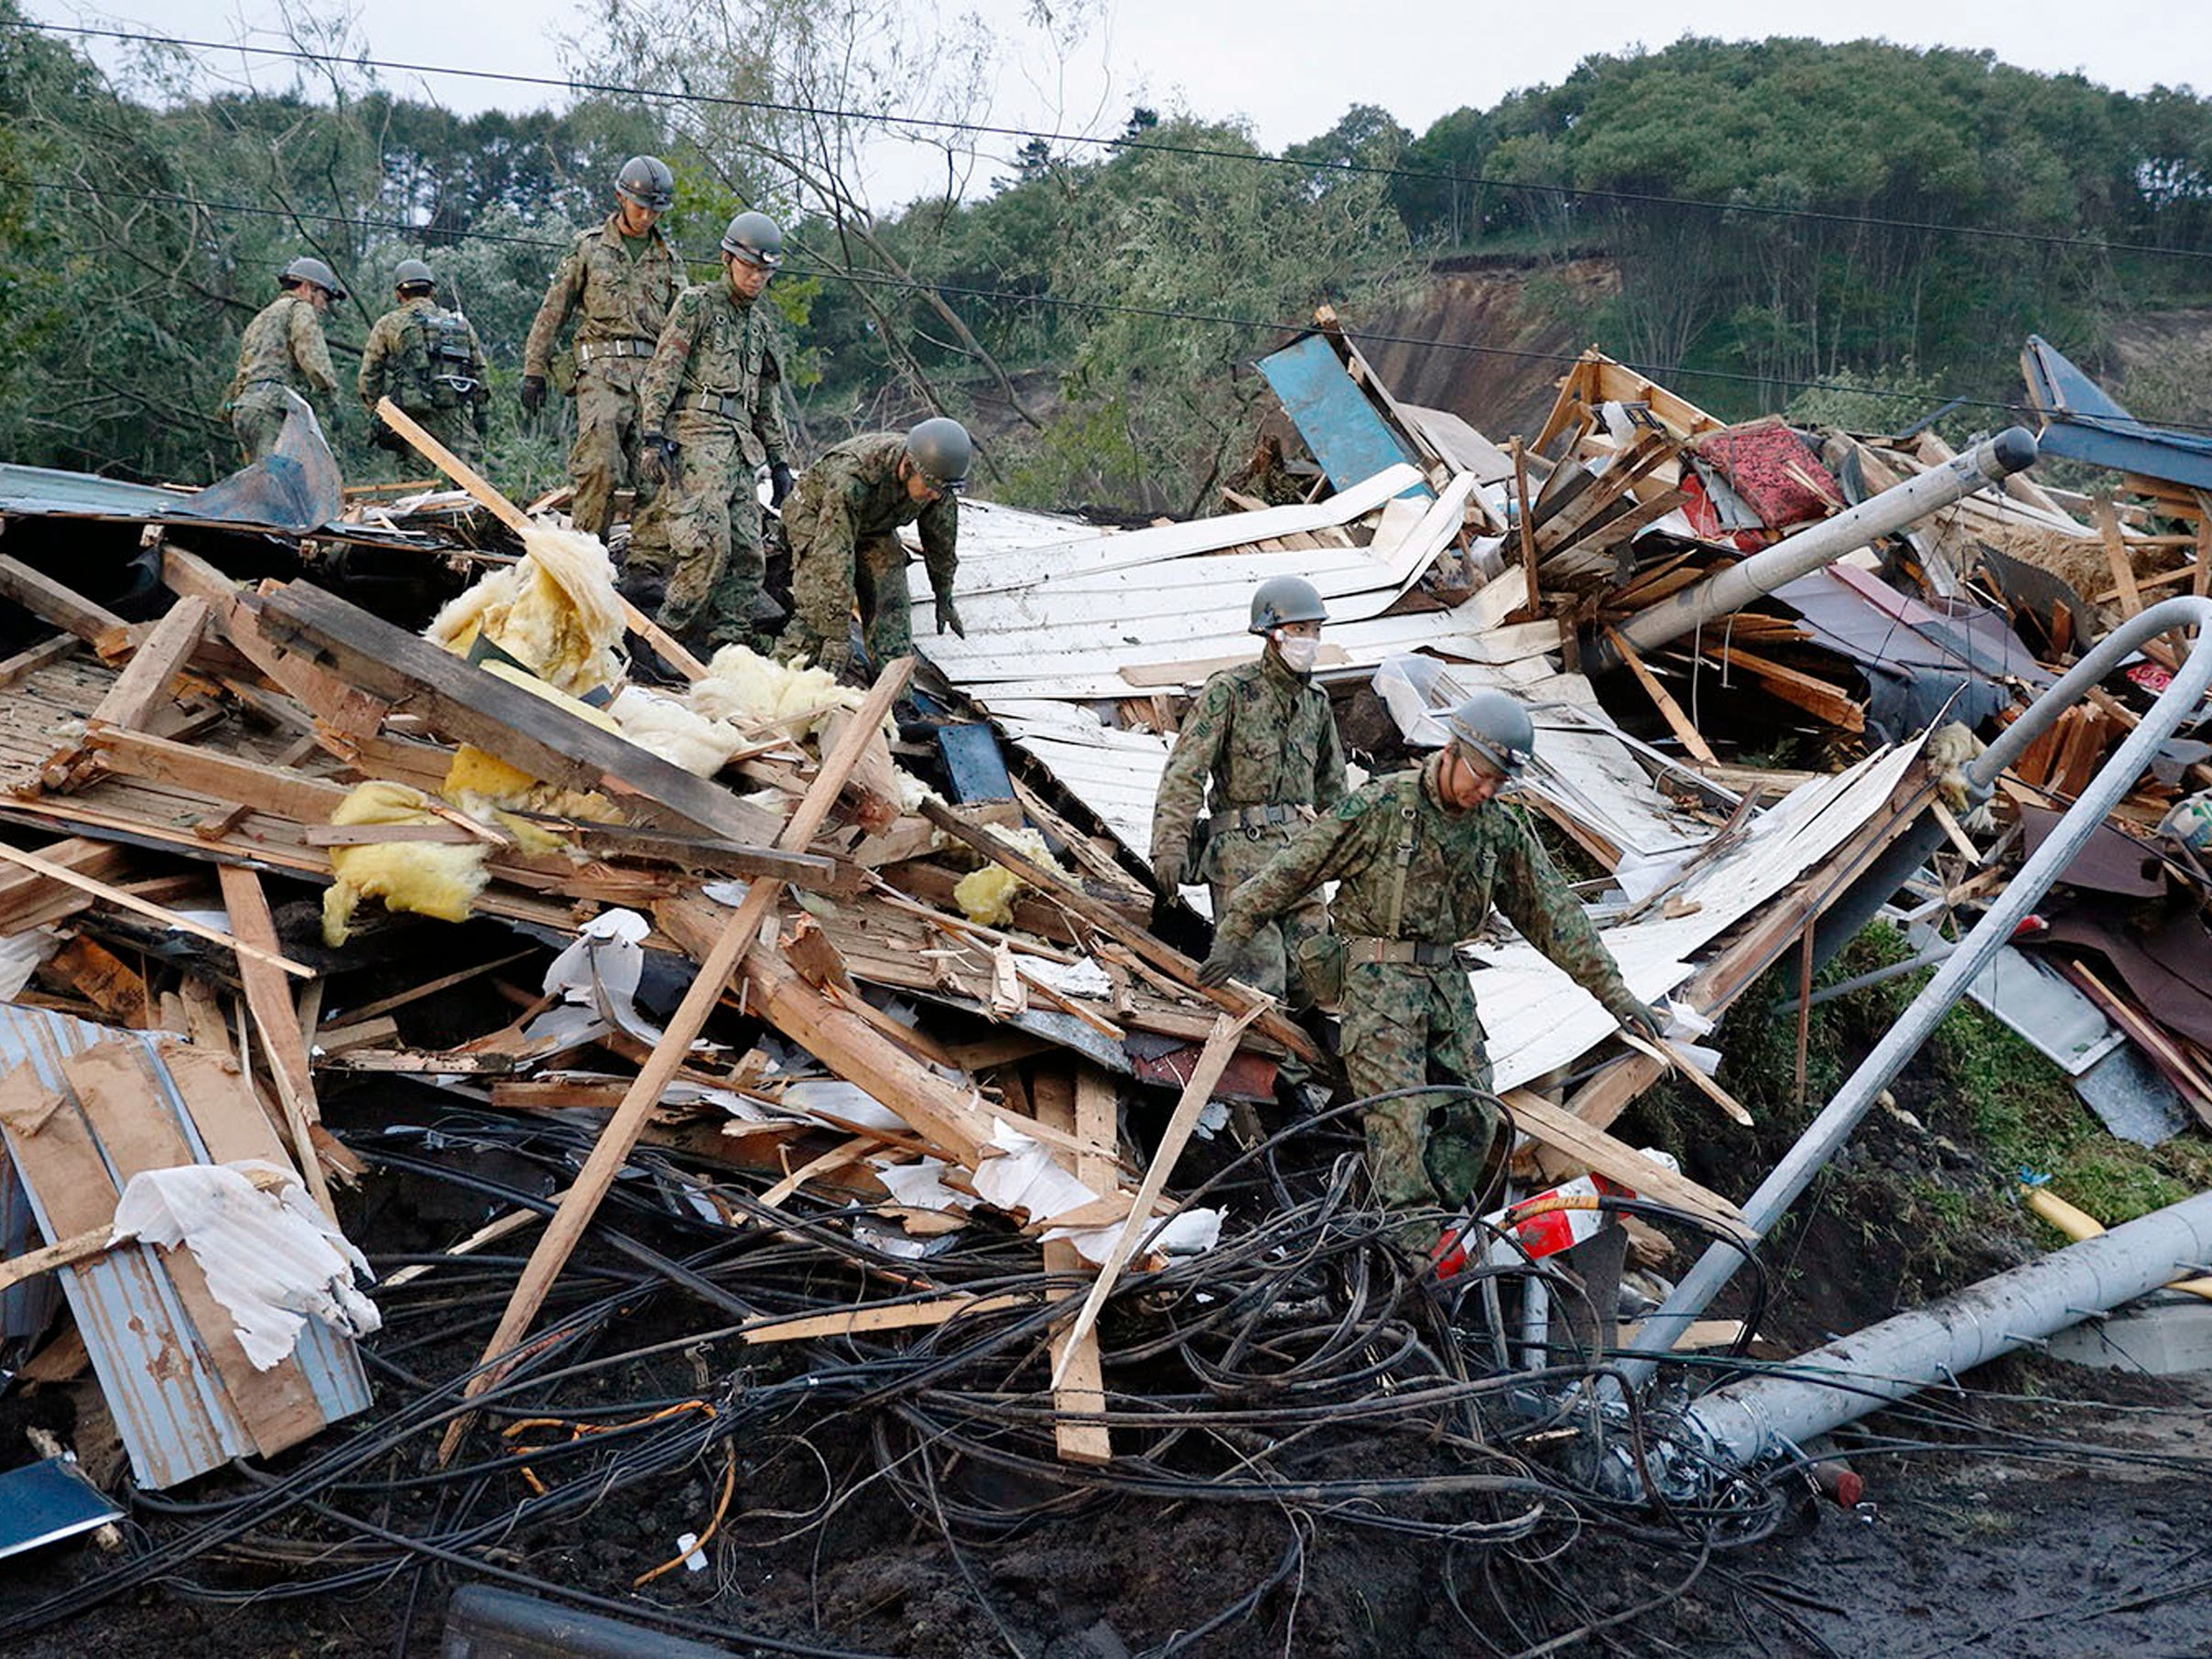 Japan Ground Self-Defense Force personnel shift through debris as they search for missing persons at the site of a landslide triggered by a powerful earthquake in Atsuma, Hokkaido, northern Japan, Friday, Sept. 7, 2018. A powerful earthquake Thursday on Japan's northernmost main island of Hokkaido triggered dozens of landslides that crushed houses under torrents of dirt, rocks and timber, prompting frantic efforts to unearth any survivors.